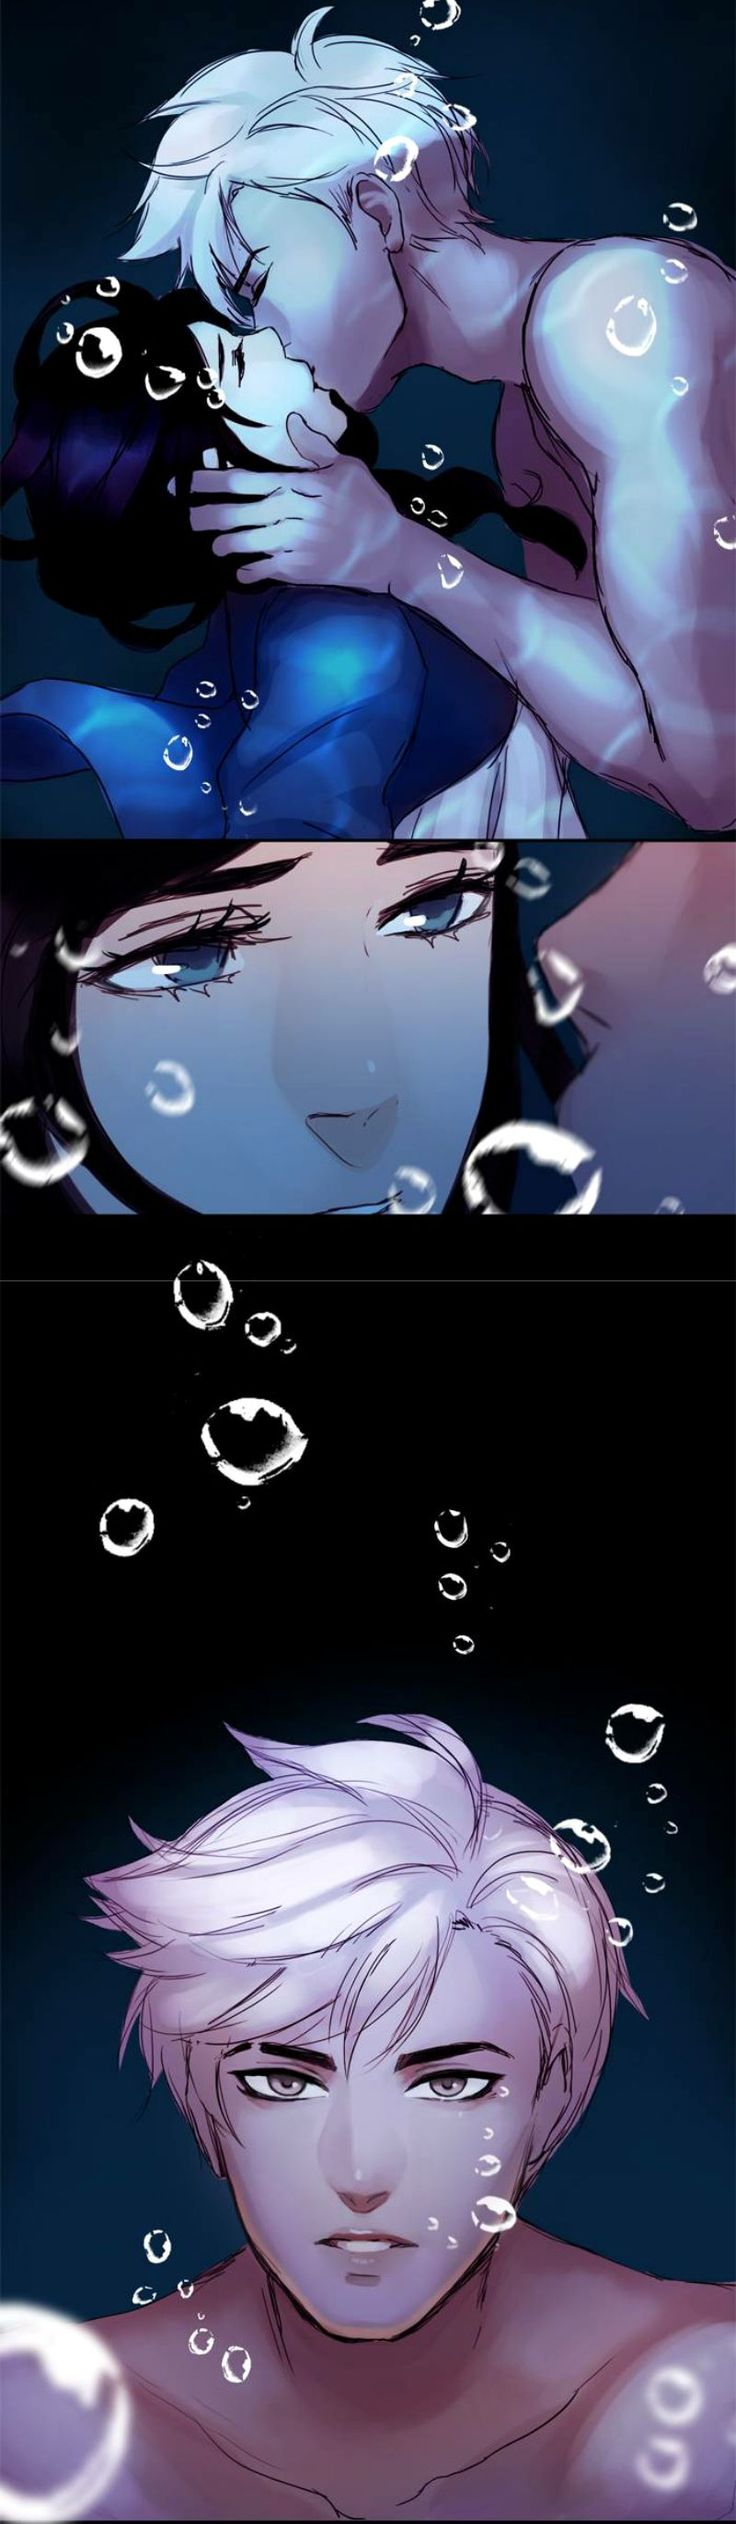 This looks a little like Marinette and Adrien, only his eyes are not green.